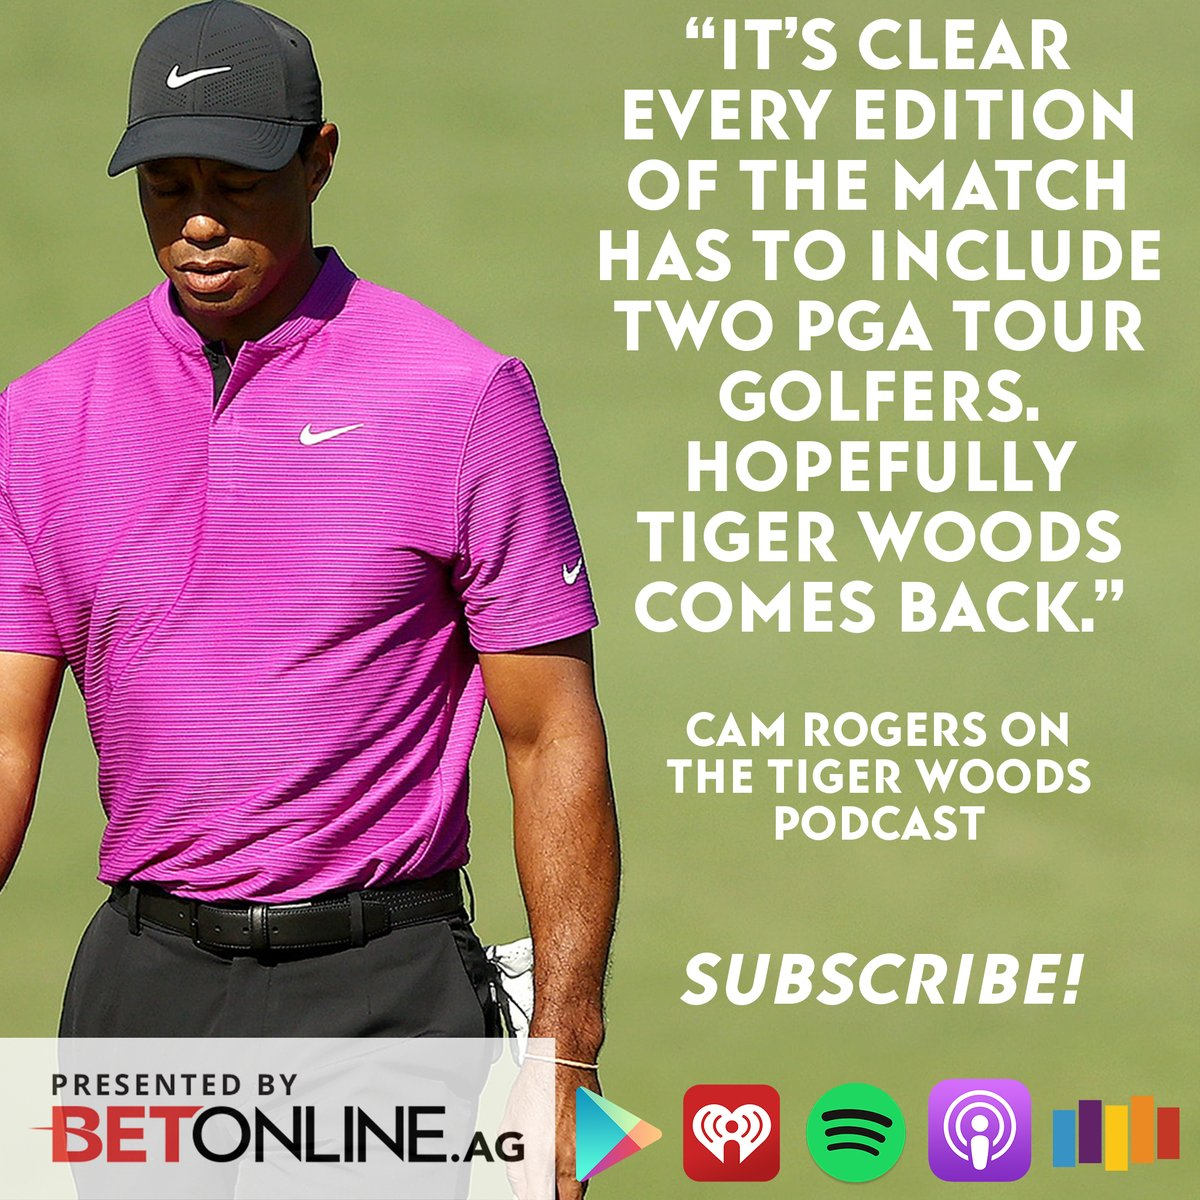 NEW Tiger Woods Podcast:  - #TheMatch recap - we need Tiger back - Tiger's playing later this month! - Mayakoba Classic picks  Tap into the show here: